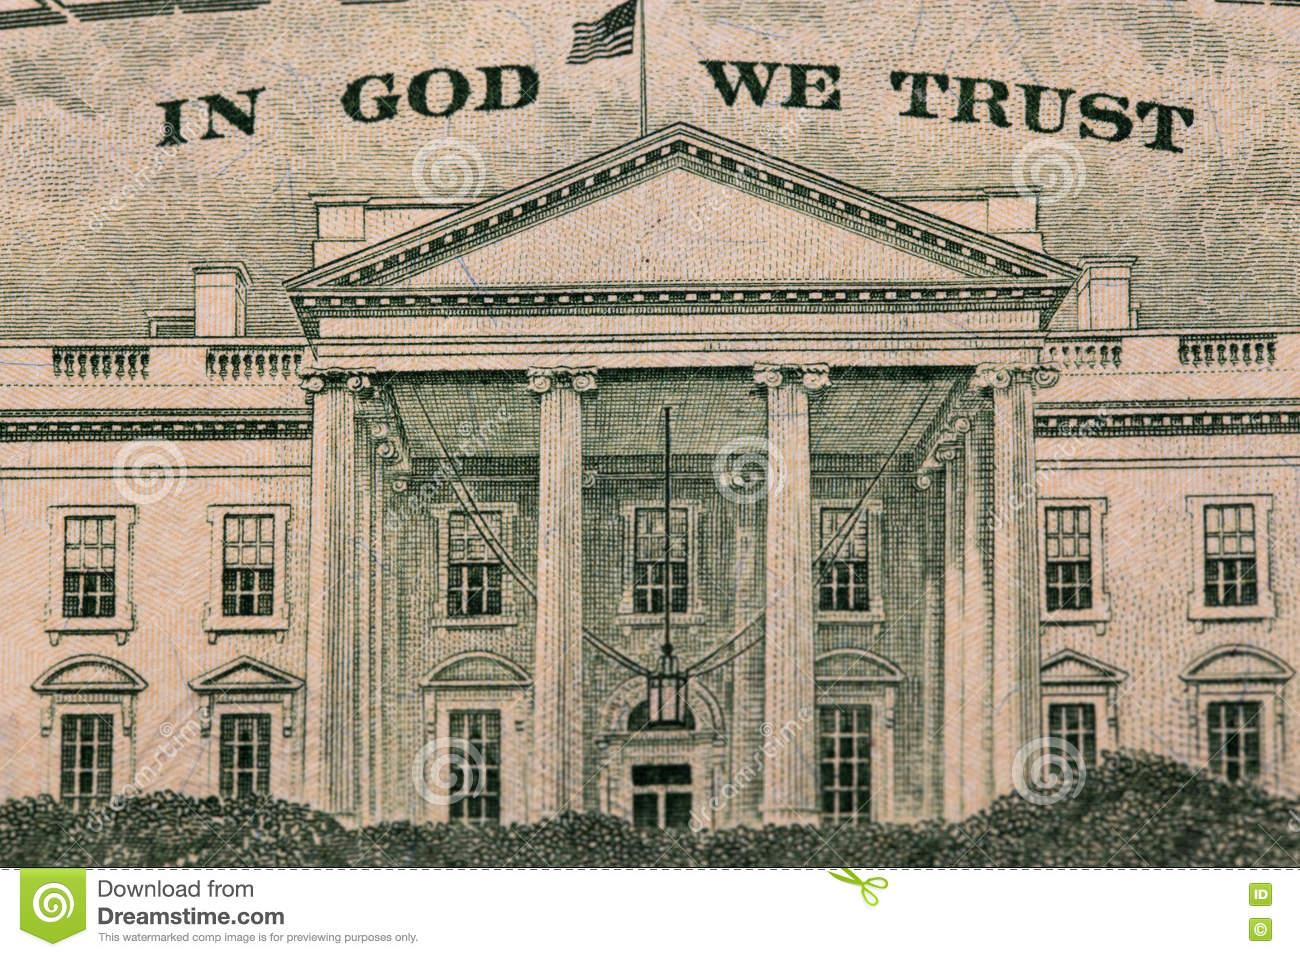 Dollar in God we trust